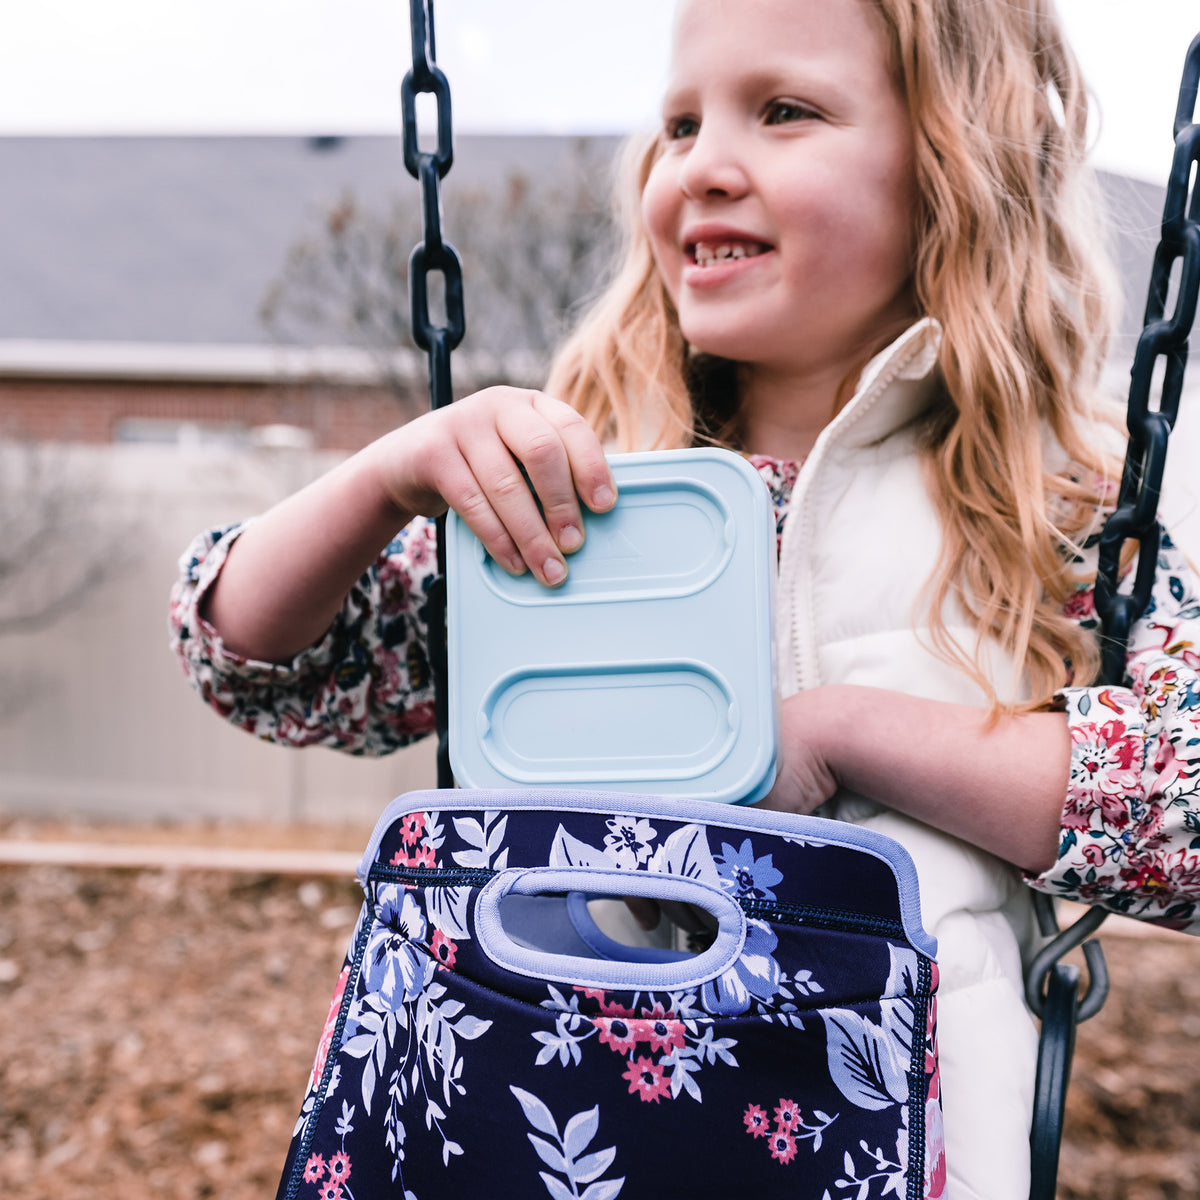 Arctic Zone® Neoprene Zaza Tote - Lifestyle, little girl packing lunch on a swing set